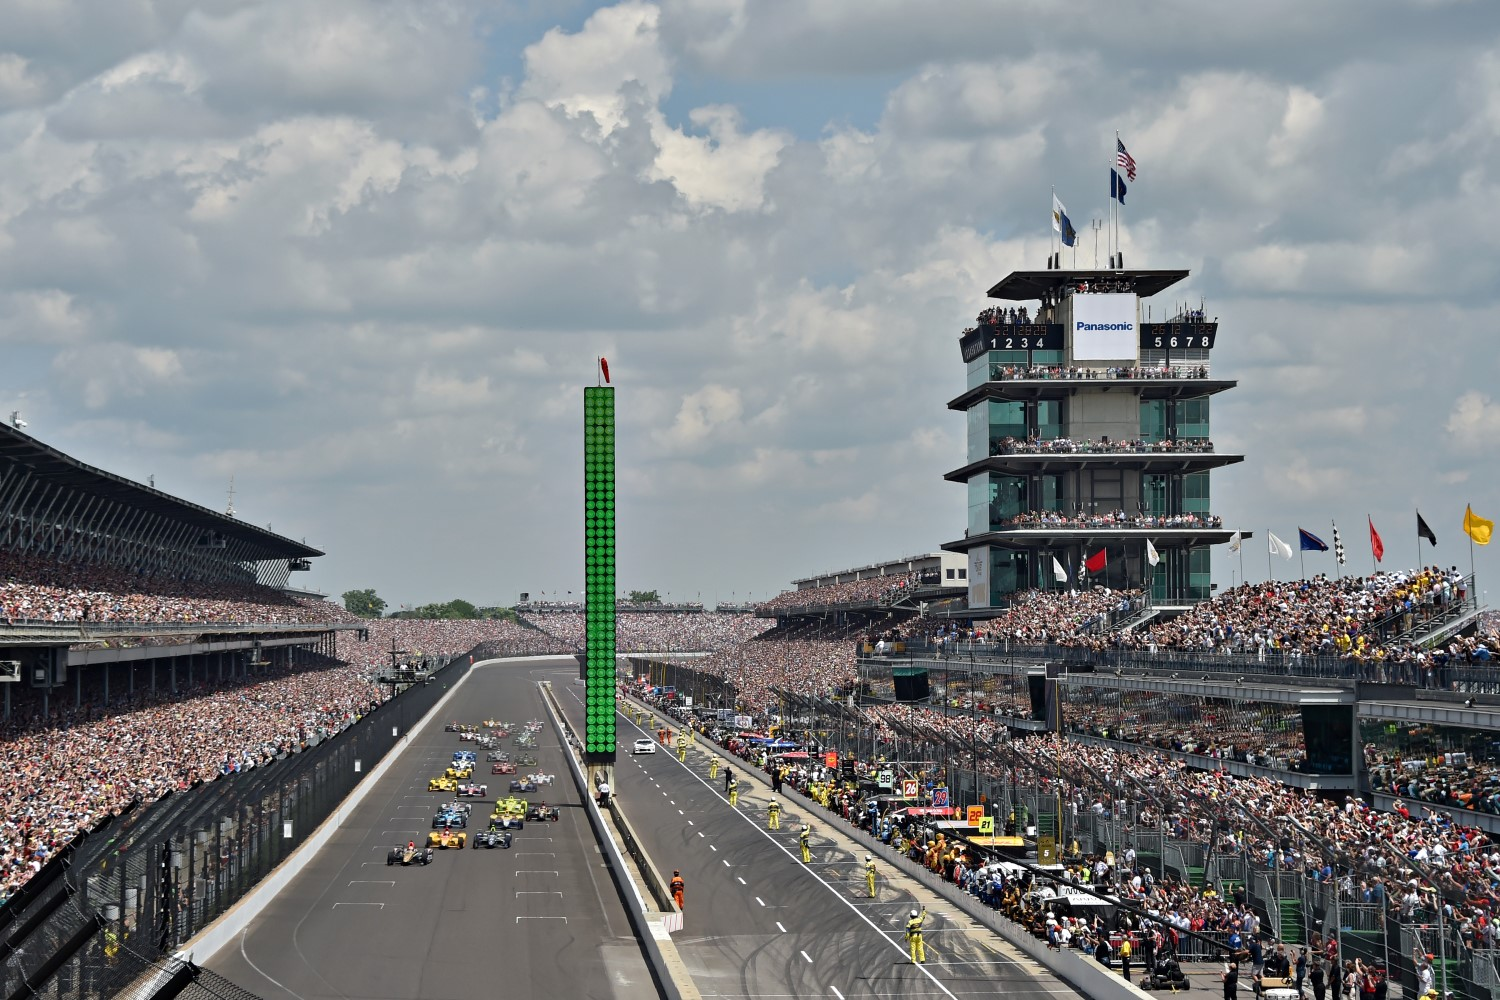 The Indianapolis Motor Speedway is #1